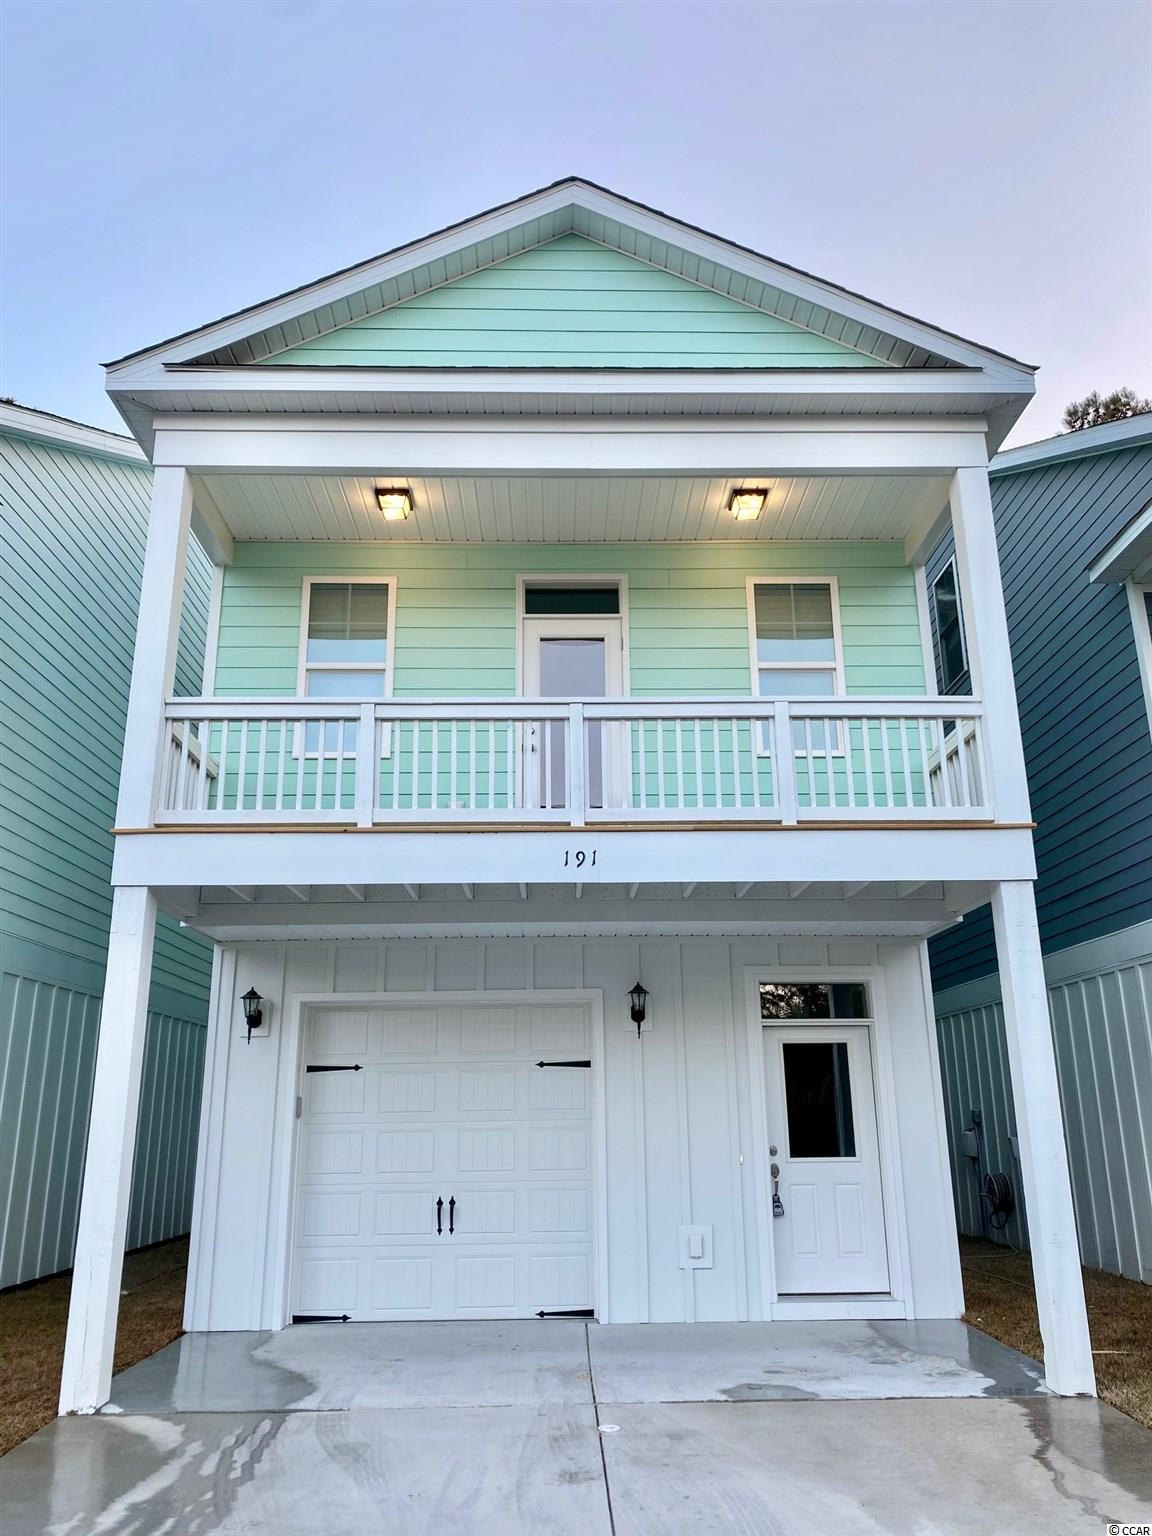 "BRAND NEW RAISED BEACH HOME To Be Built & Located 1 Mile From The Beach! Enjoy Easy Living At Jamestowne Landing, Which Has An HOA That Manages The Homeowners Insurance, Exterior Maintenance, Trash Pickup, Cable TV, Lawncare/Landscaping, Pest Control & Community Pool Which Is Only Steps Away. GOLF CART TO THE BEACH Straight Down Jamestown Rd/Atlantic Ave To Multiple Garden City Beach Access Points (1.25 Mile Route). Enjoy All The Garden City Beach Restaurants, Garden City Pier, Arcade & Shops. Restaurants & Shops Are Within Walking Distance Of Community As Well. The ""SANIBEL"" Model Offers 3 Beds, 2 Full Baths, And Has A DEEP One-Car Attached Garage & 2 Car Parking Pad... PLUS... Shared Parking Throughout The Community. Plenty of Room In The Garage For Your Toys. The Inviting Front Covered Porch Has Overhang & (Optional) Paddle Fans...All You Need Is Your Glass of Iced Tea! Half Bath Can Be Added on Ground Level Behind Garage. Upgrades Available For Your Customization. Several Floor Plans With Ground Level Bonus Room & Extended Master Bedroom Are Available For This Site. Lot 403 Backs Up To Wooded Area. Ideal Primary Home or Beach Getaway! Pictures Are Of A Similar Existing Upgraded Model. Sq. Ft. Is Approximate And Not Guaranteed, Buyer To Verify."